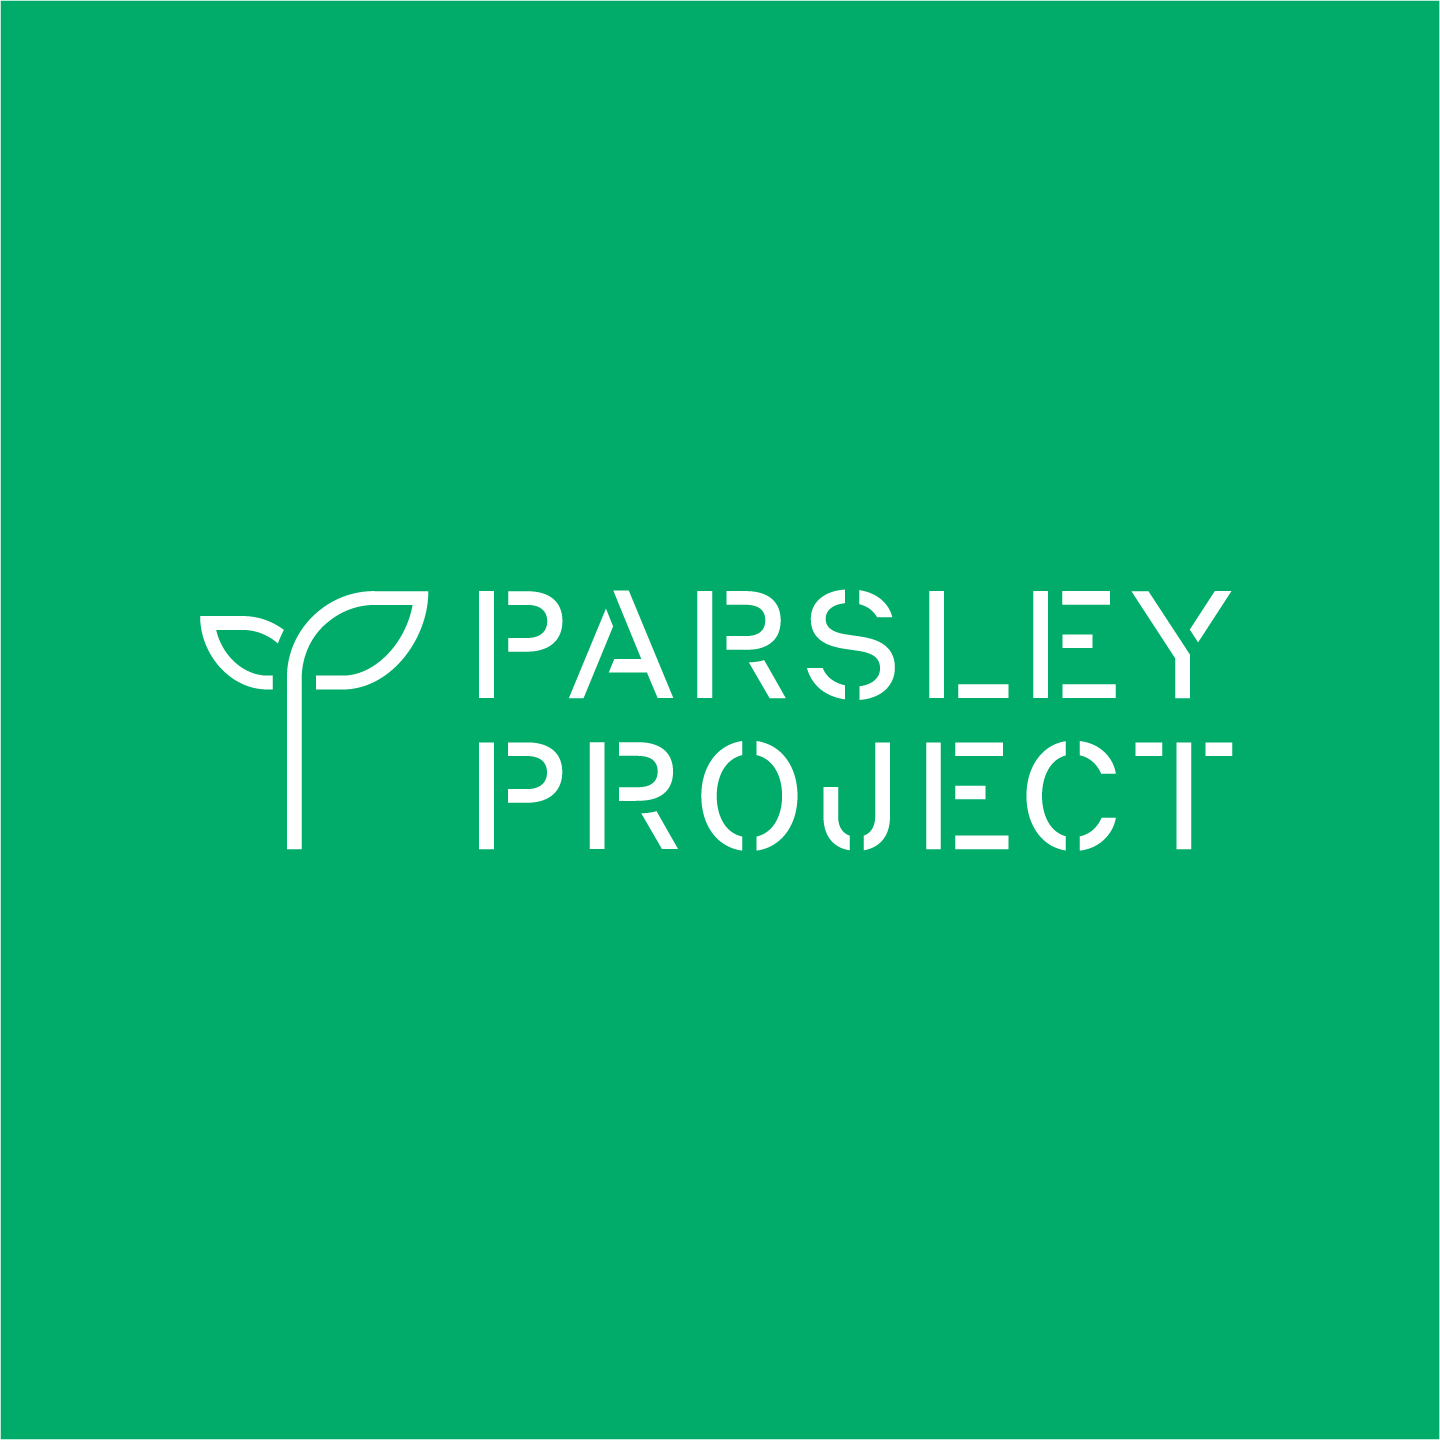 Parsley Project logo by Hunter Oden of oden.house